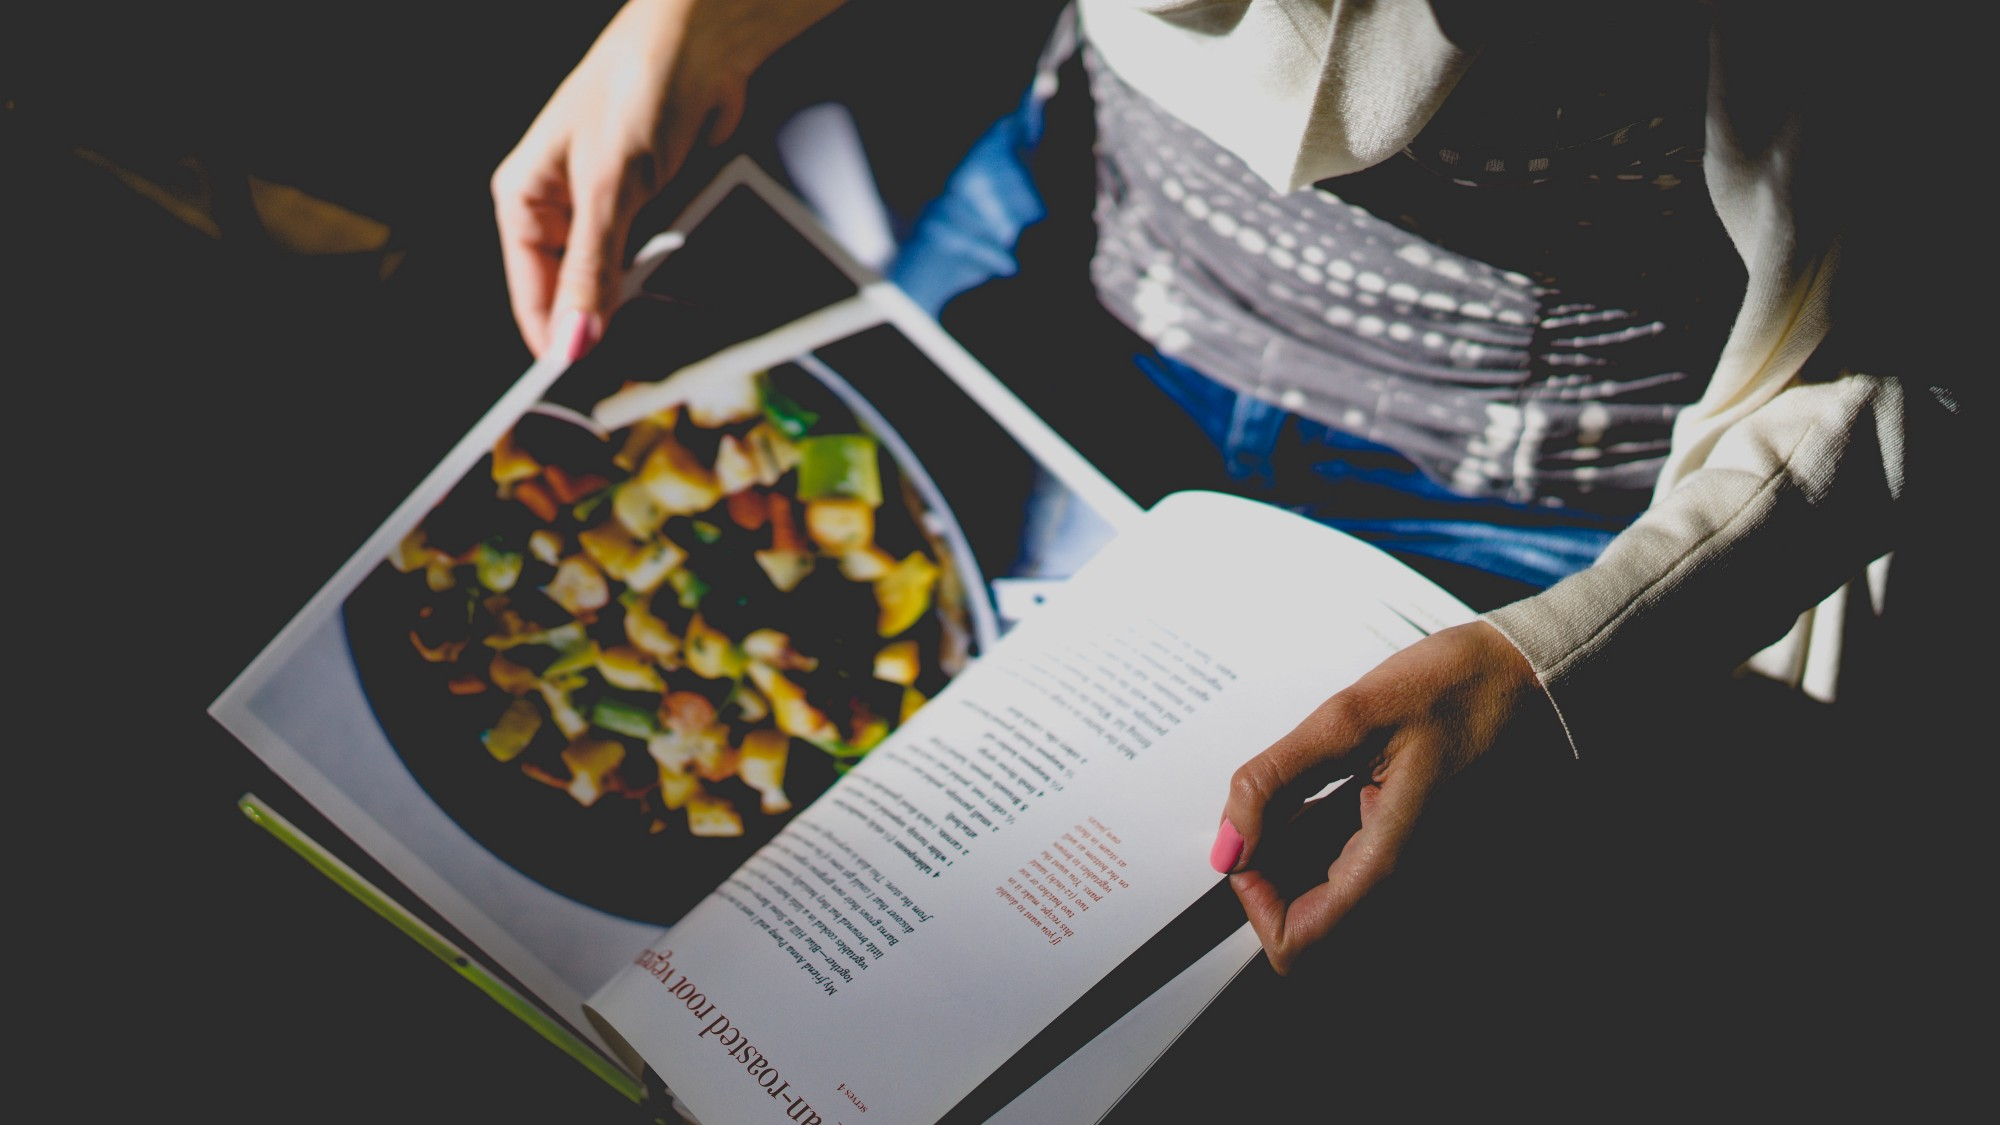 A person's hands holding open a cookbook.